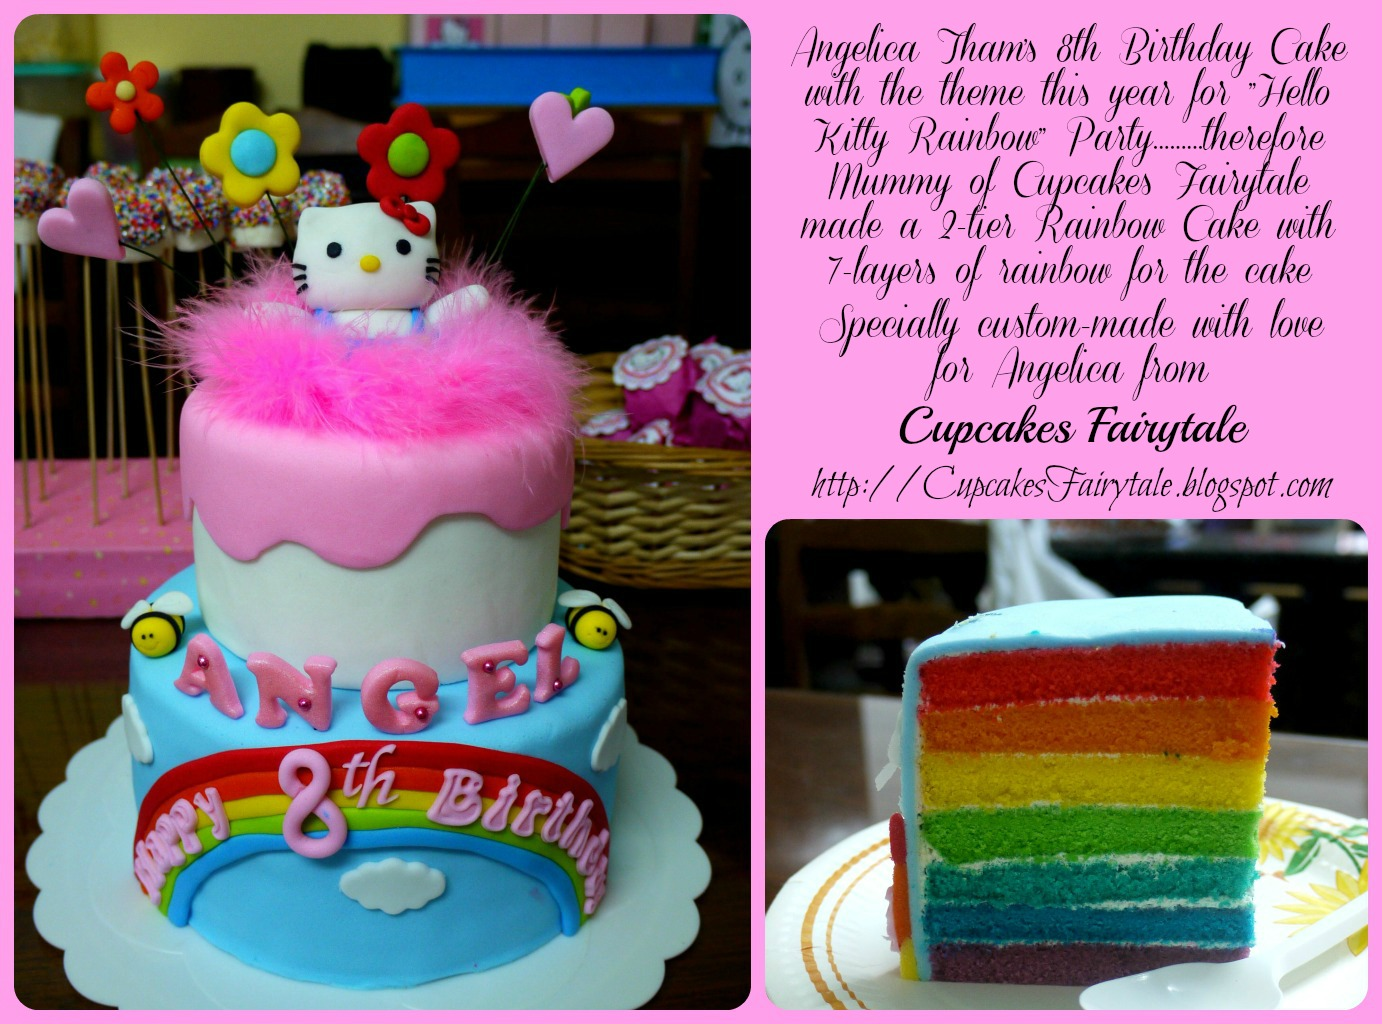 Cupcakes Fairytale ANGELICAS HELLO KITTY RAINBOW BIRTHDAY CAKE